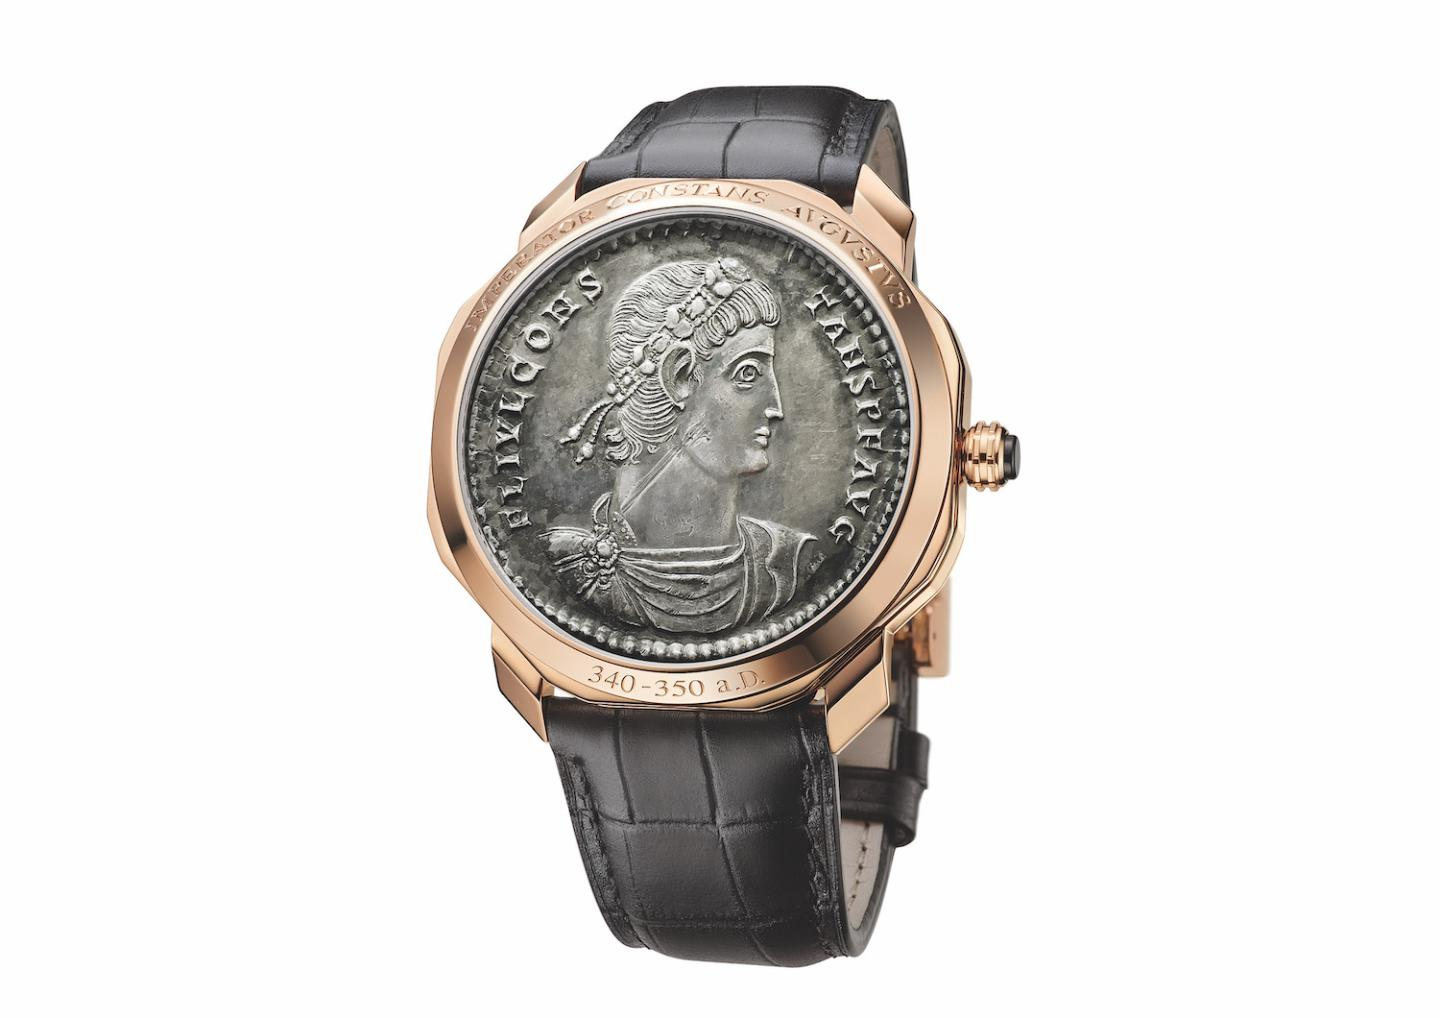 This Octo Roma Monete with an extra-thin skeleton movement comes in rose gold and is fitted with an ultra-rare 4th century Roman coin on its face.